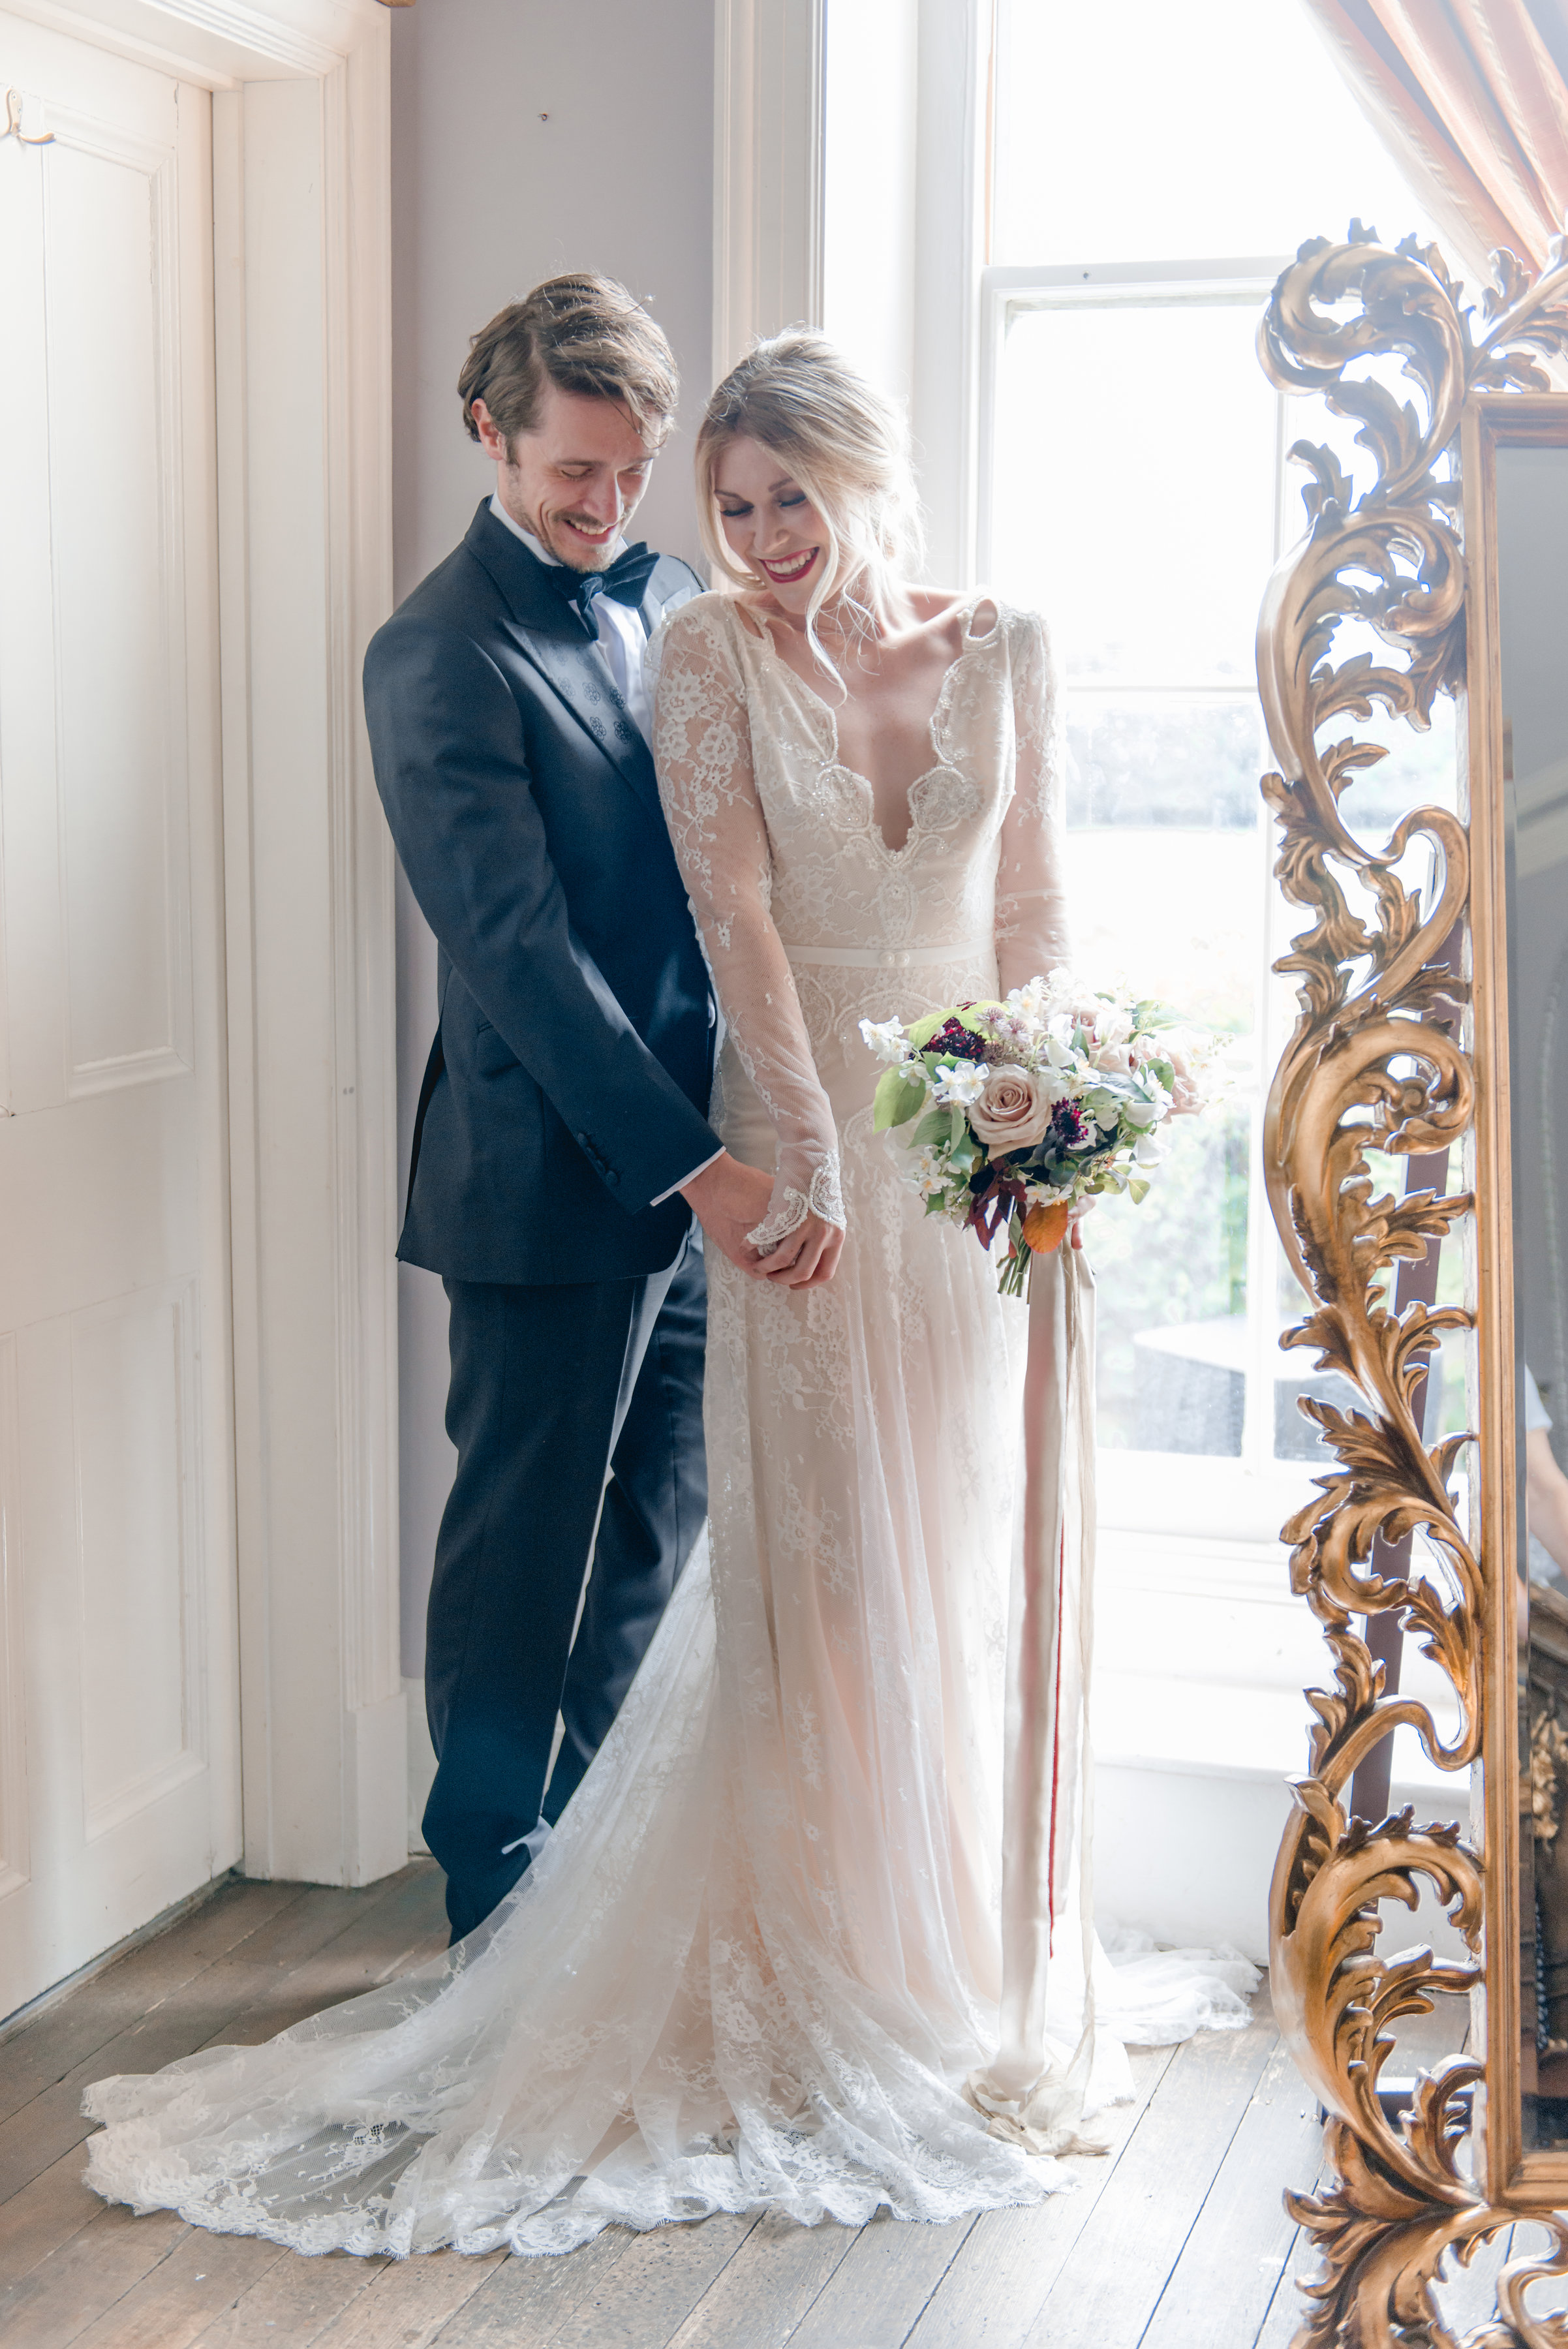 The Timeless Stylist-Elegant and Romantic Wedding Styling-Bride and Groom Love.jpg